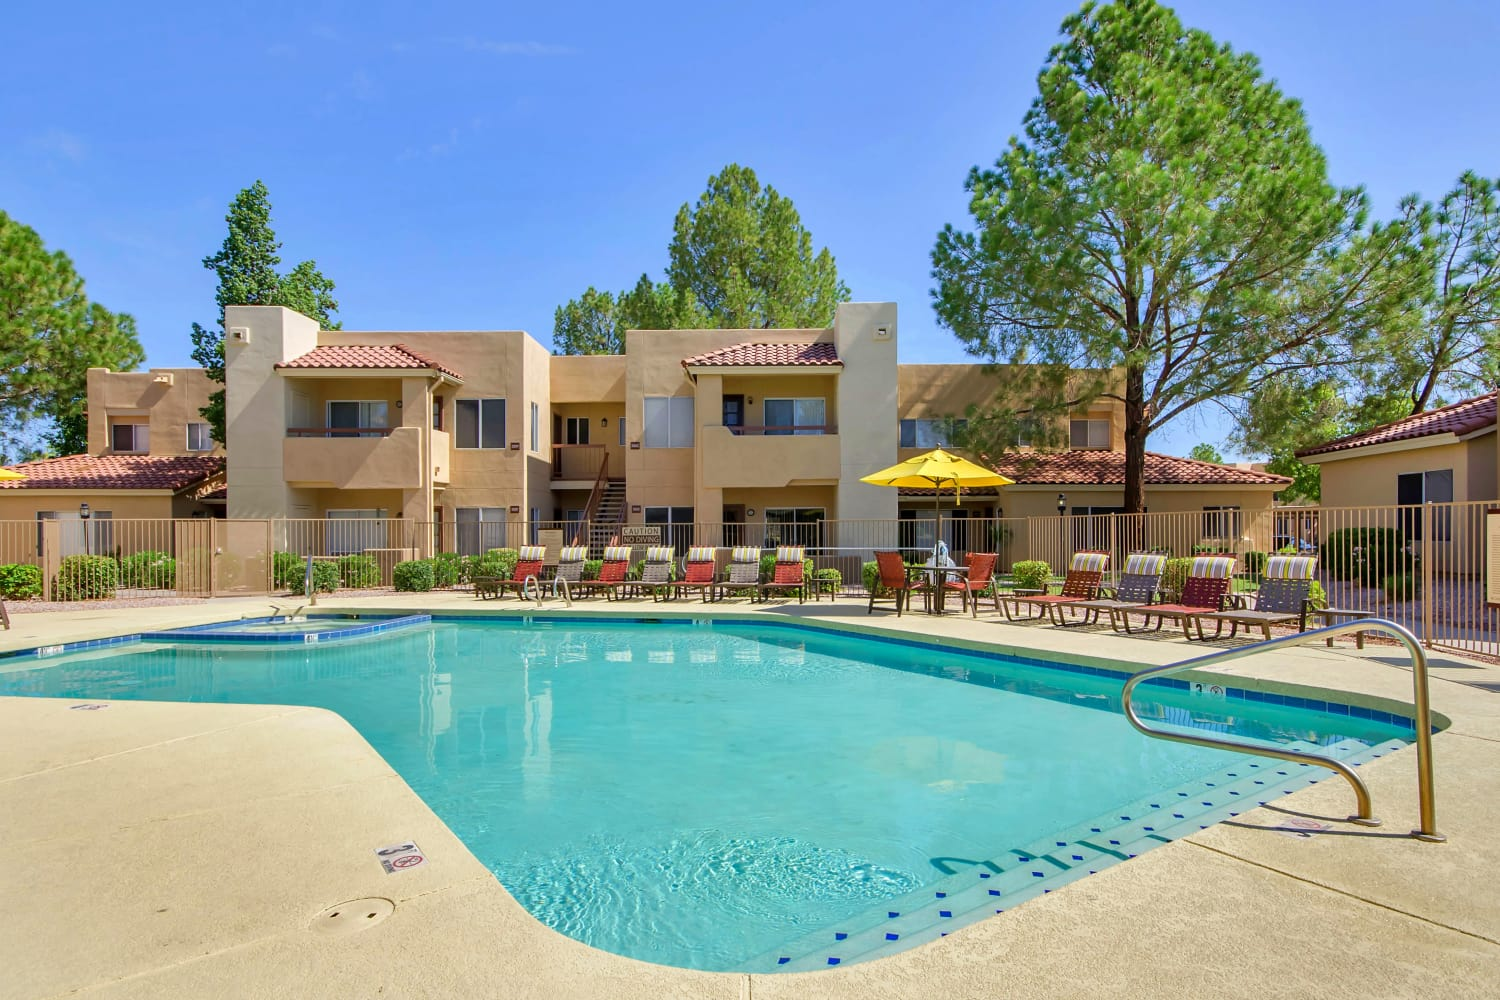 Outdoor swimming pool at Alcove at the Islands in Gilbert, Arizona